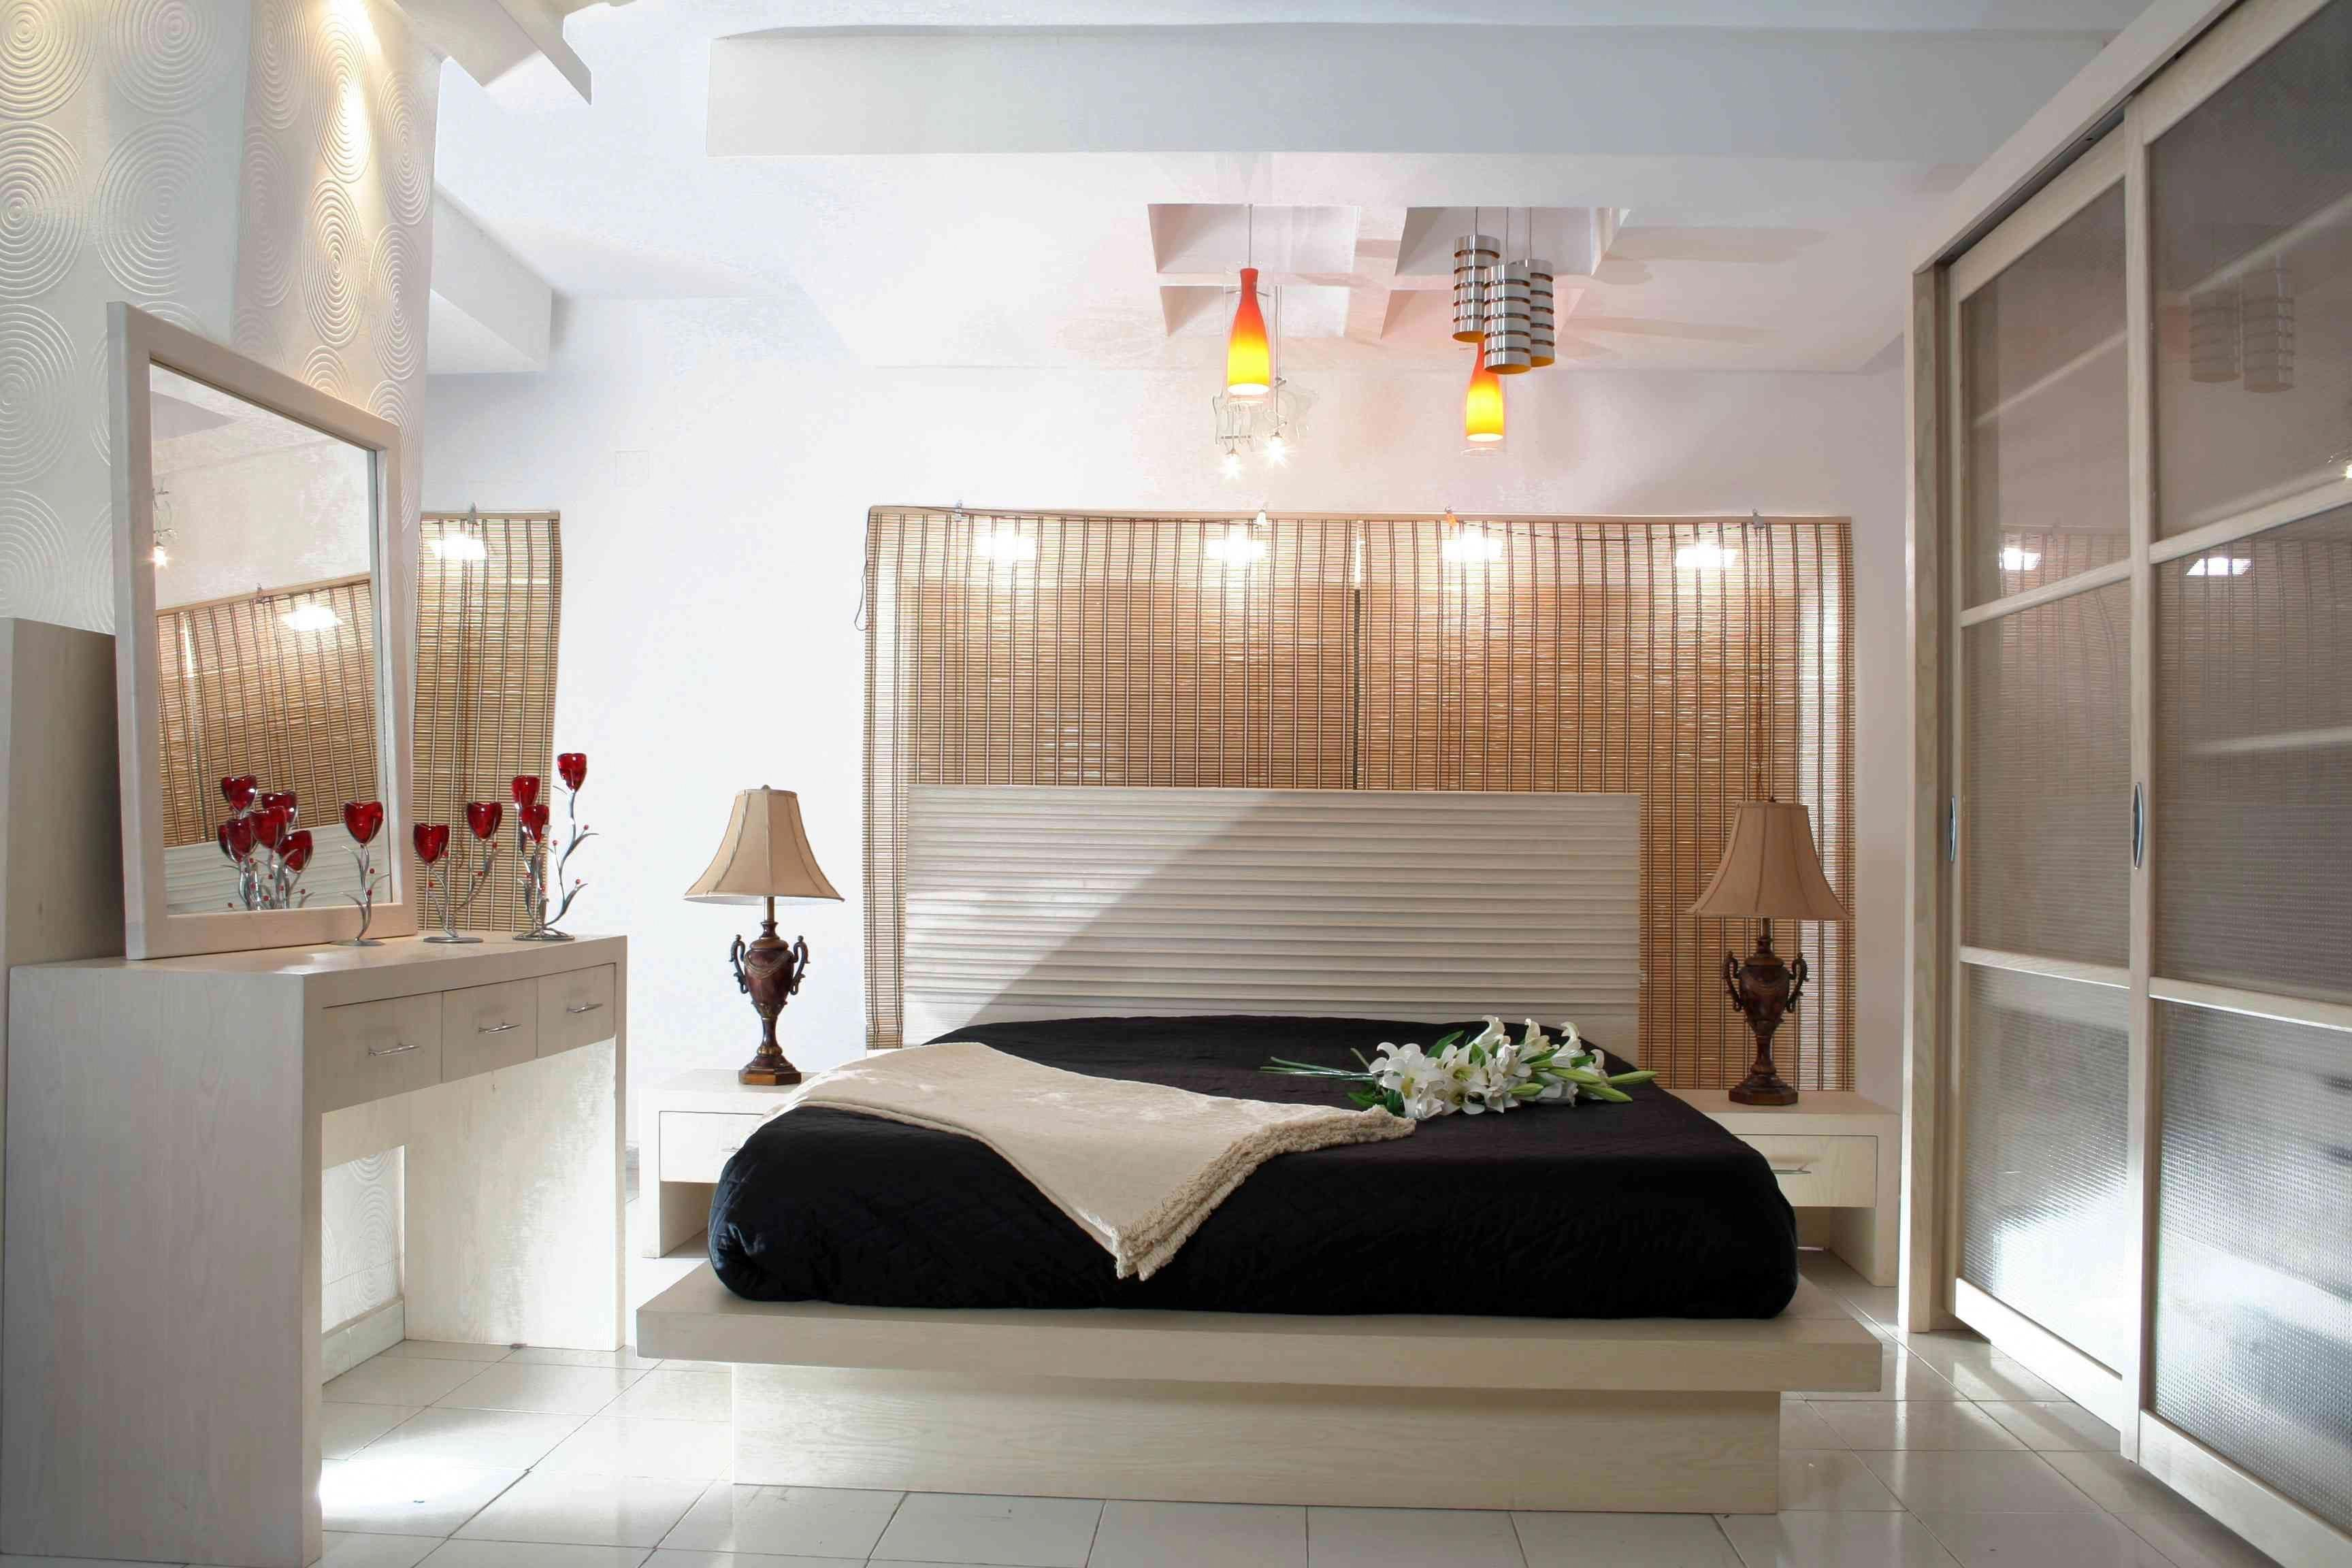 Bedroom Ideas for Couples | bedroom decorating ideas for ...